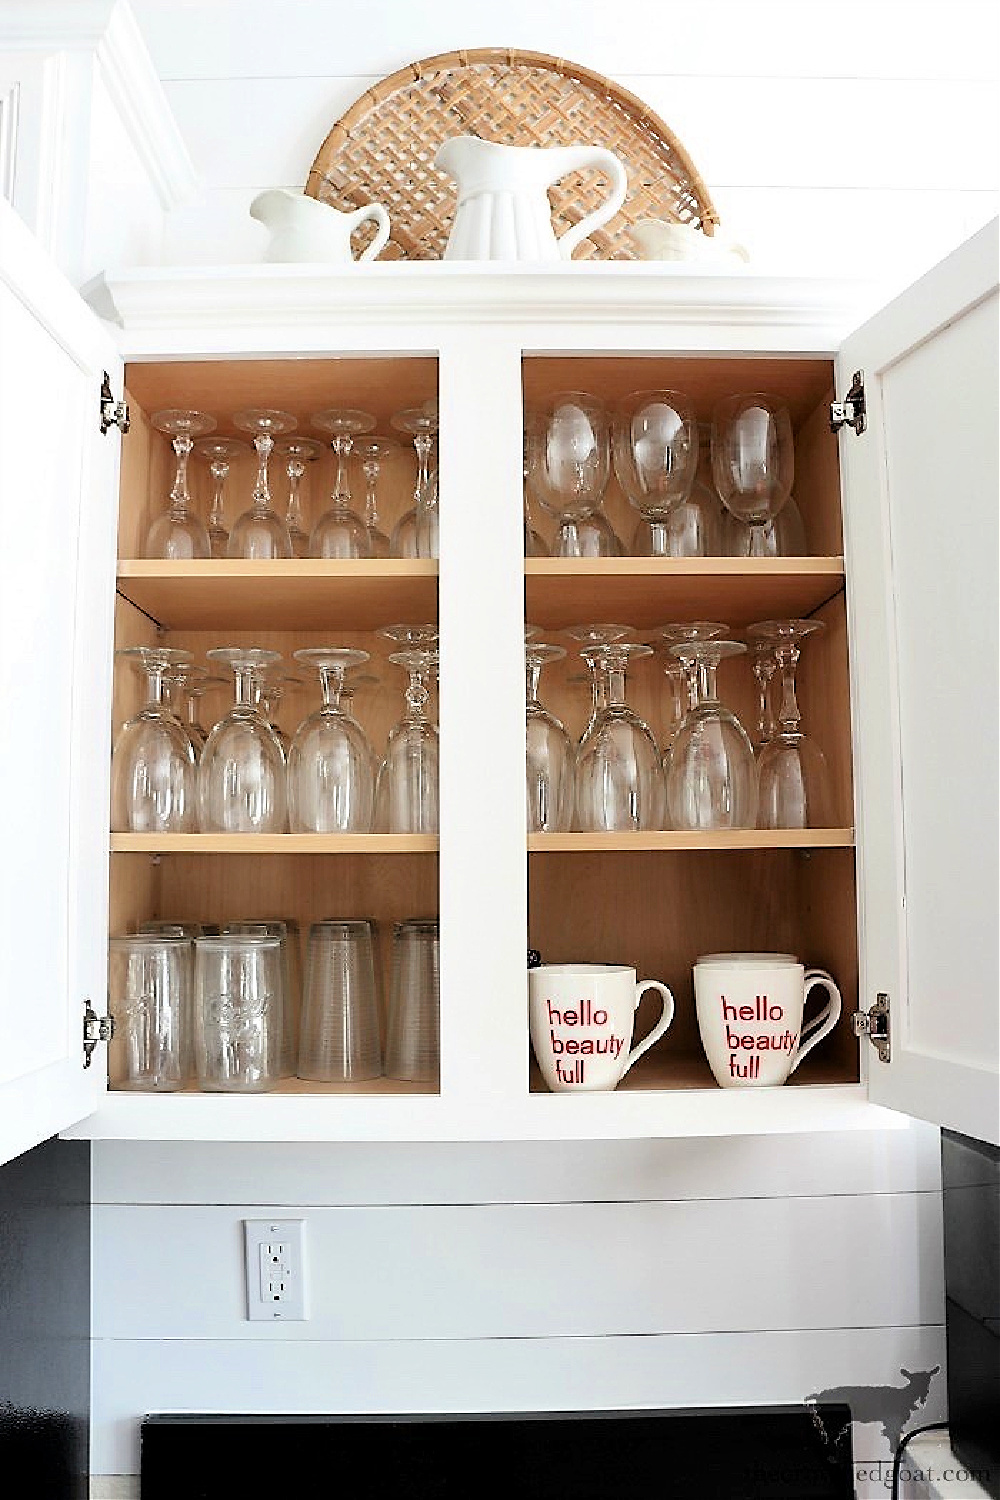 11 Ways to Clean, Maintain, and Organize Your Kitchen-Kitchen Cabinet Organization-The Crowned Goat